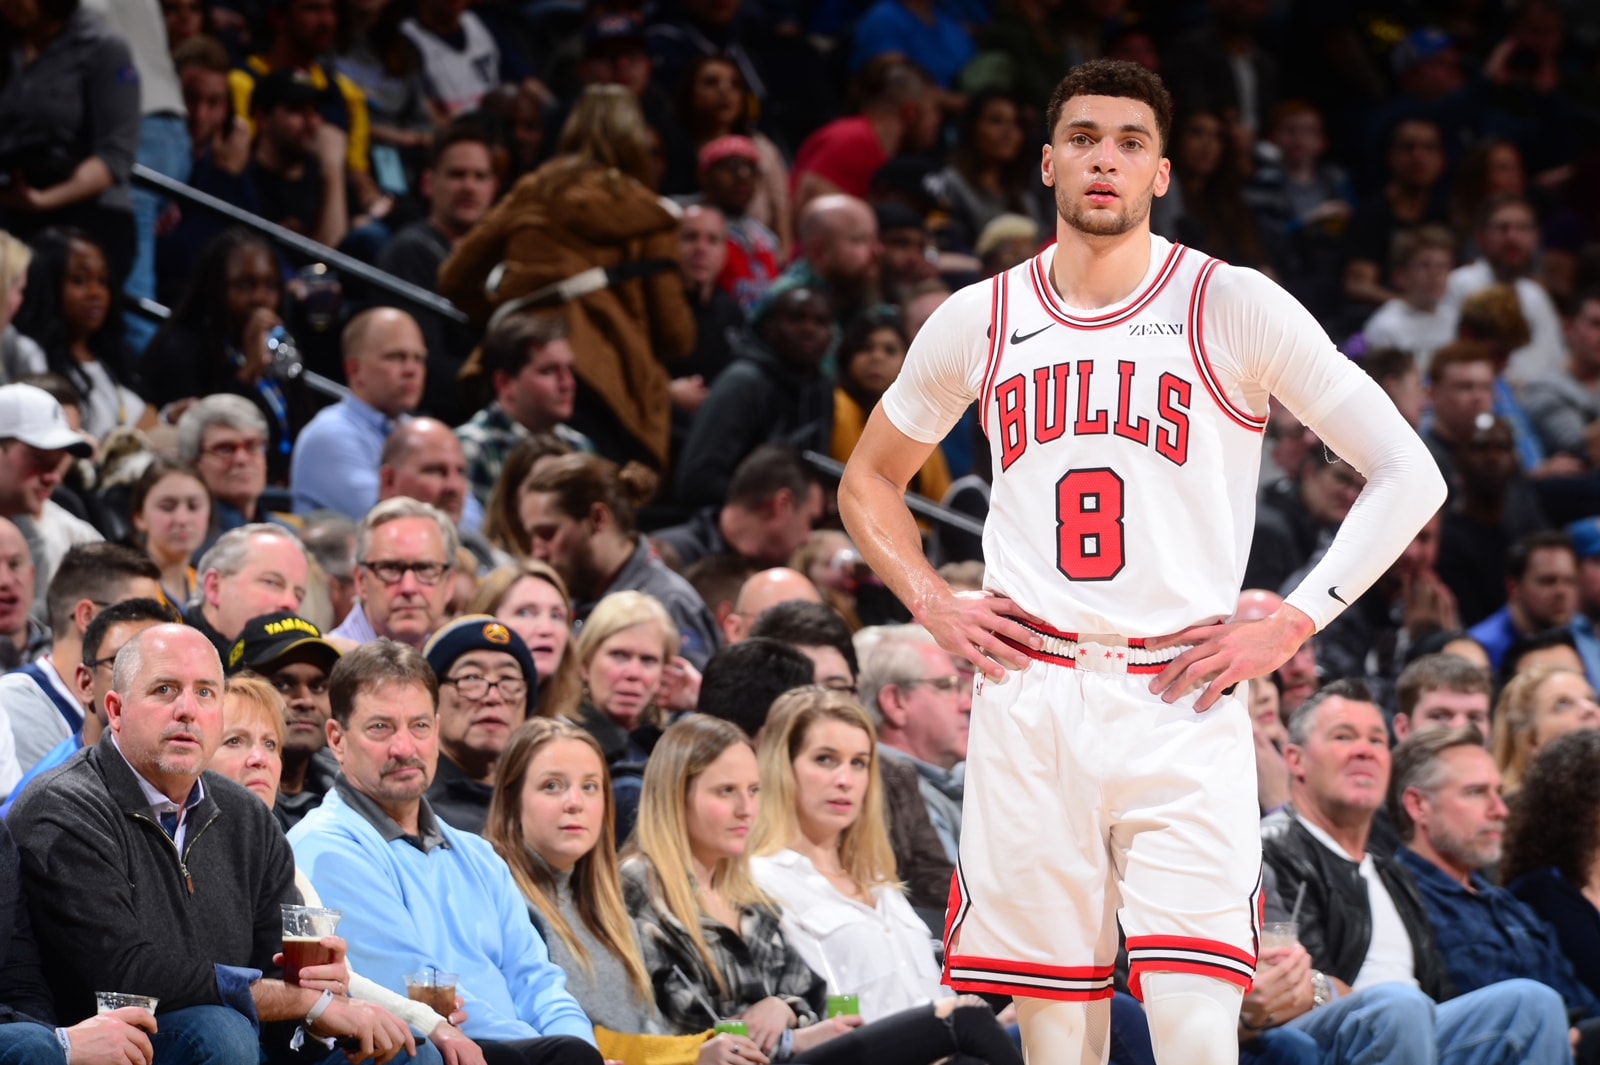 Zach LaVine #8 of the Chicago Bulls looks on during the game against the Denver Nuggets on January 17, 2019 at the Pepsi Center in Denver, Colorado.